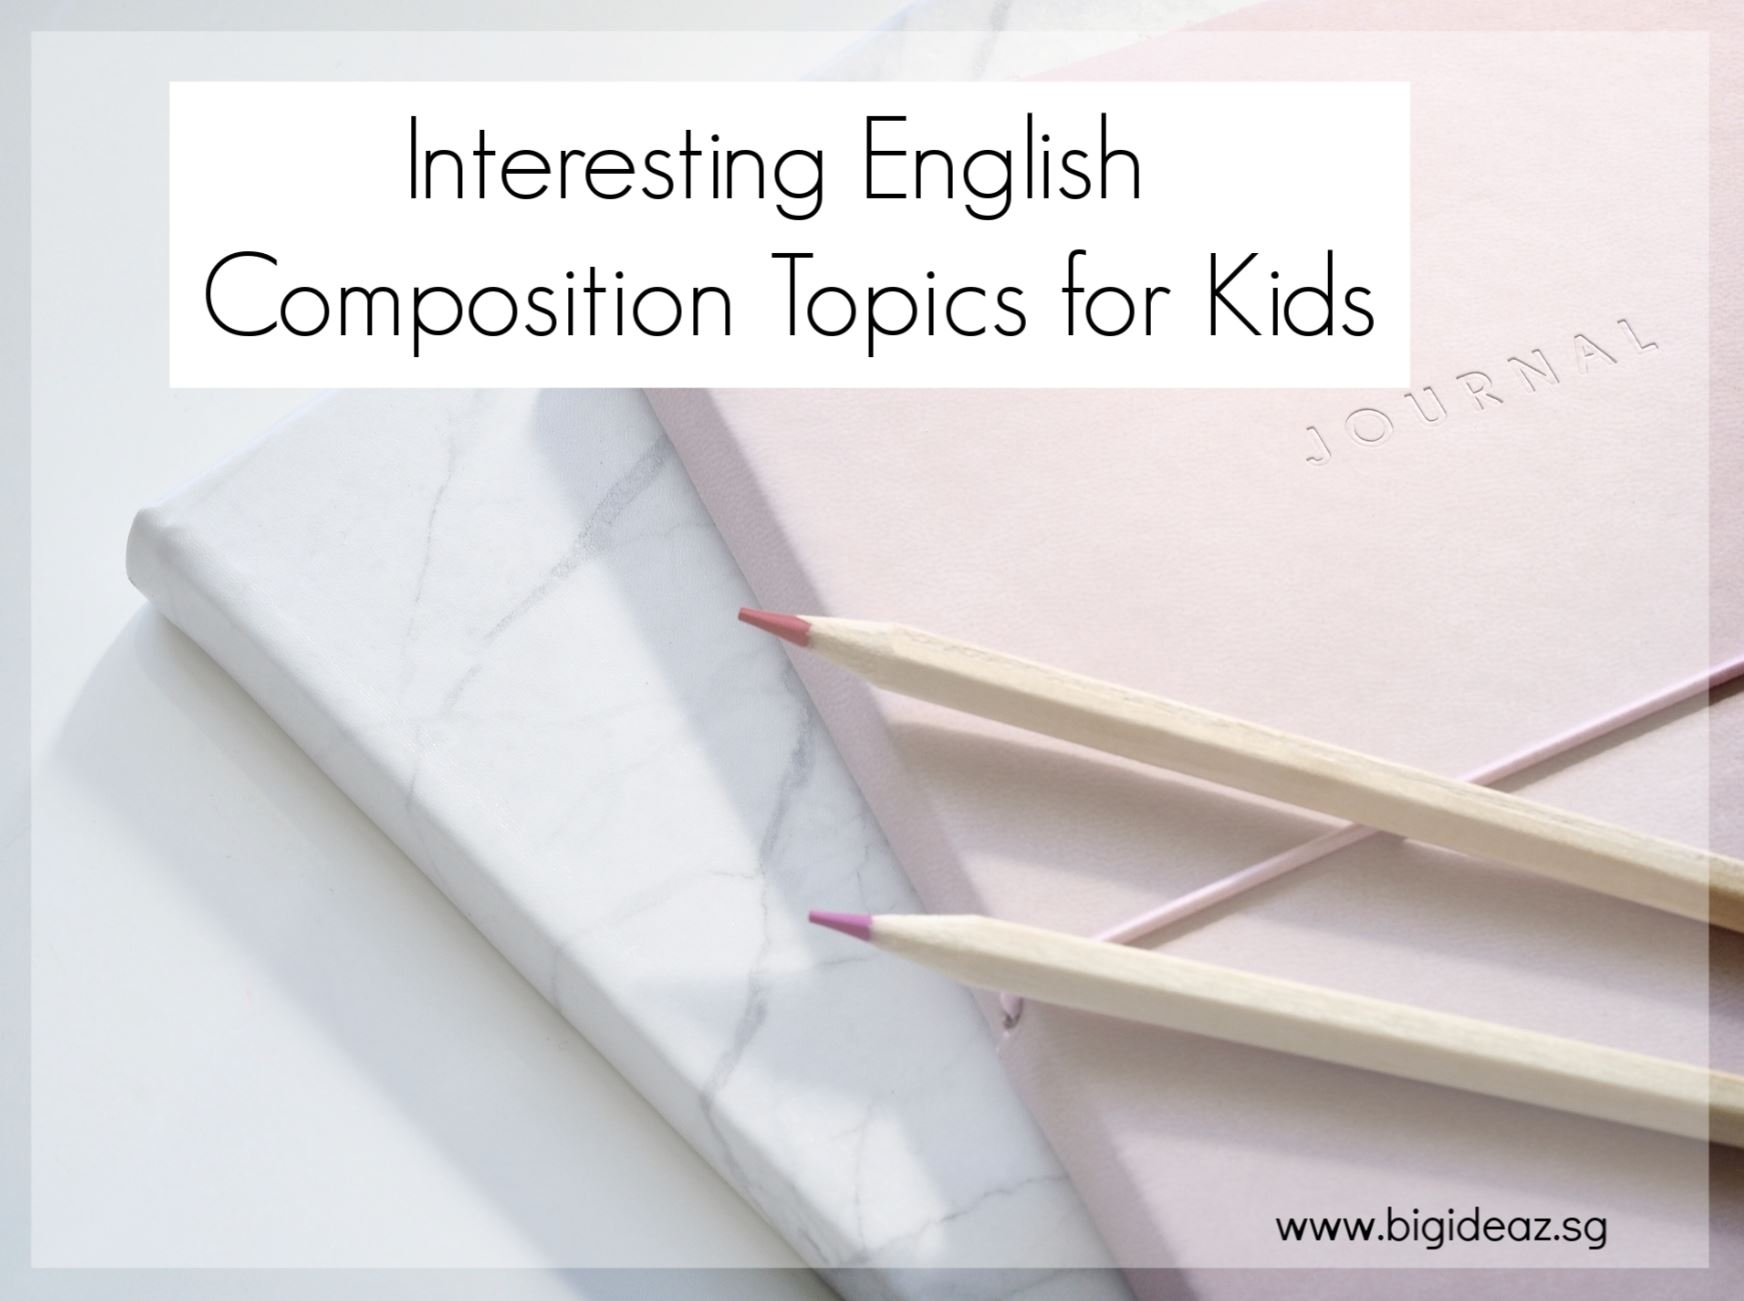 English composition topics